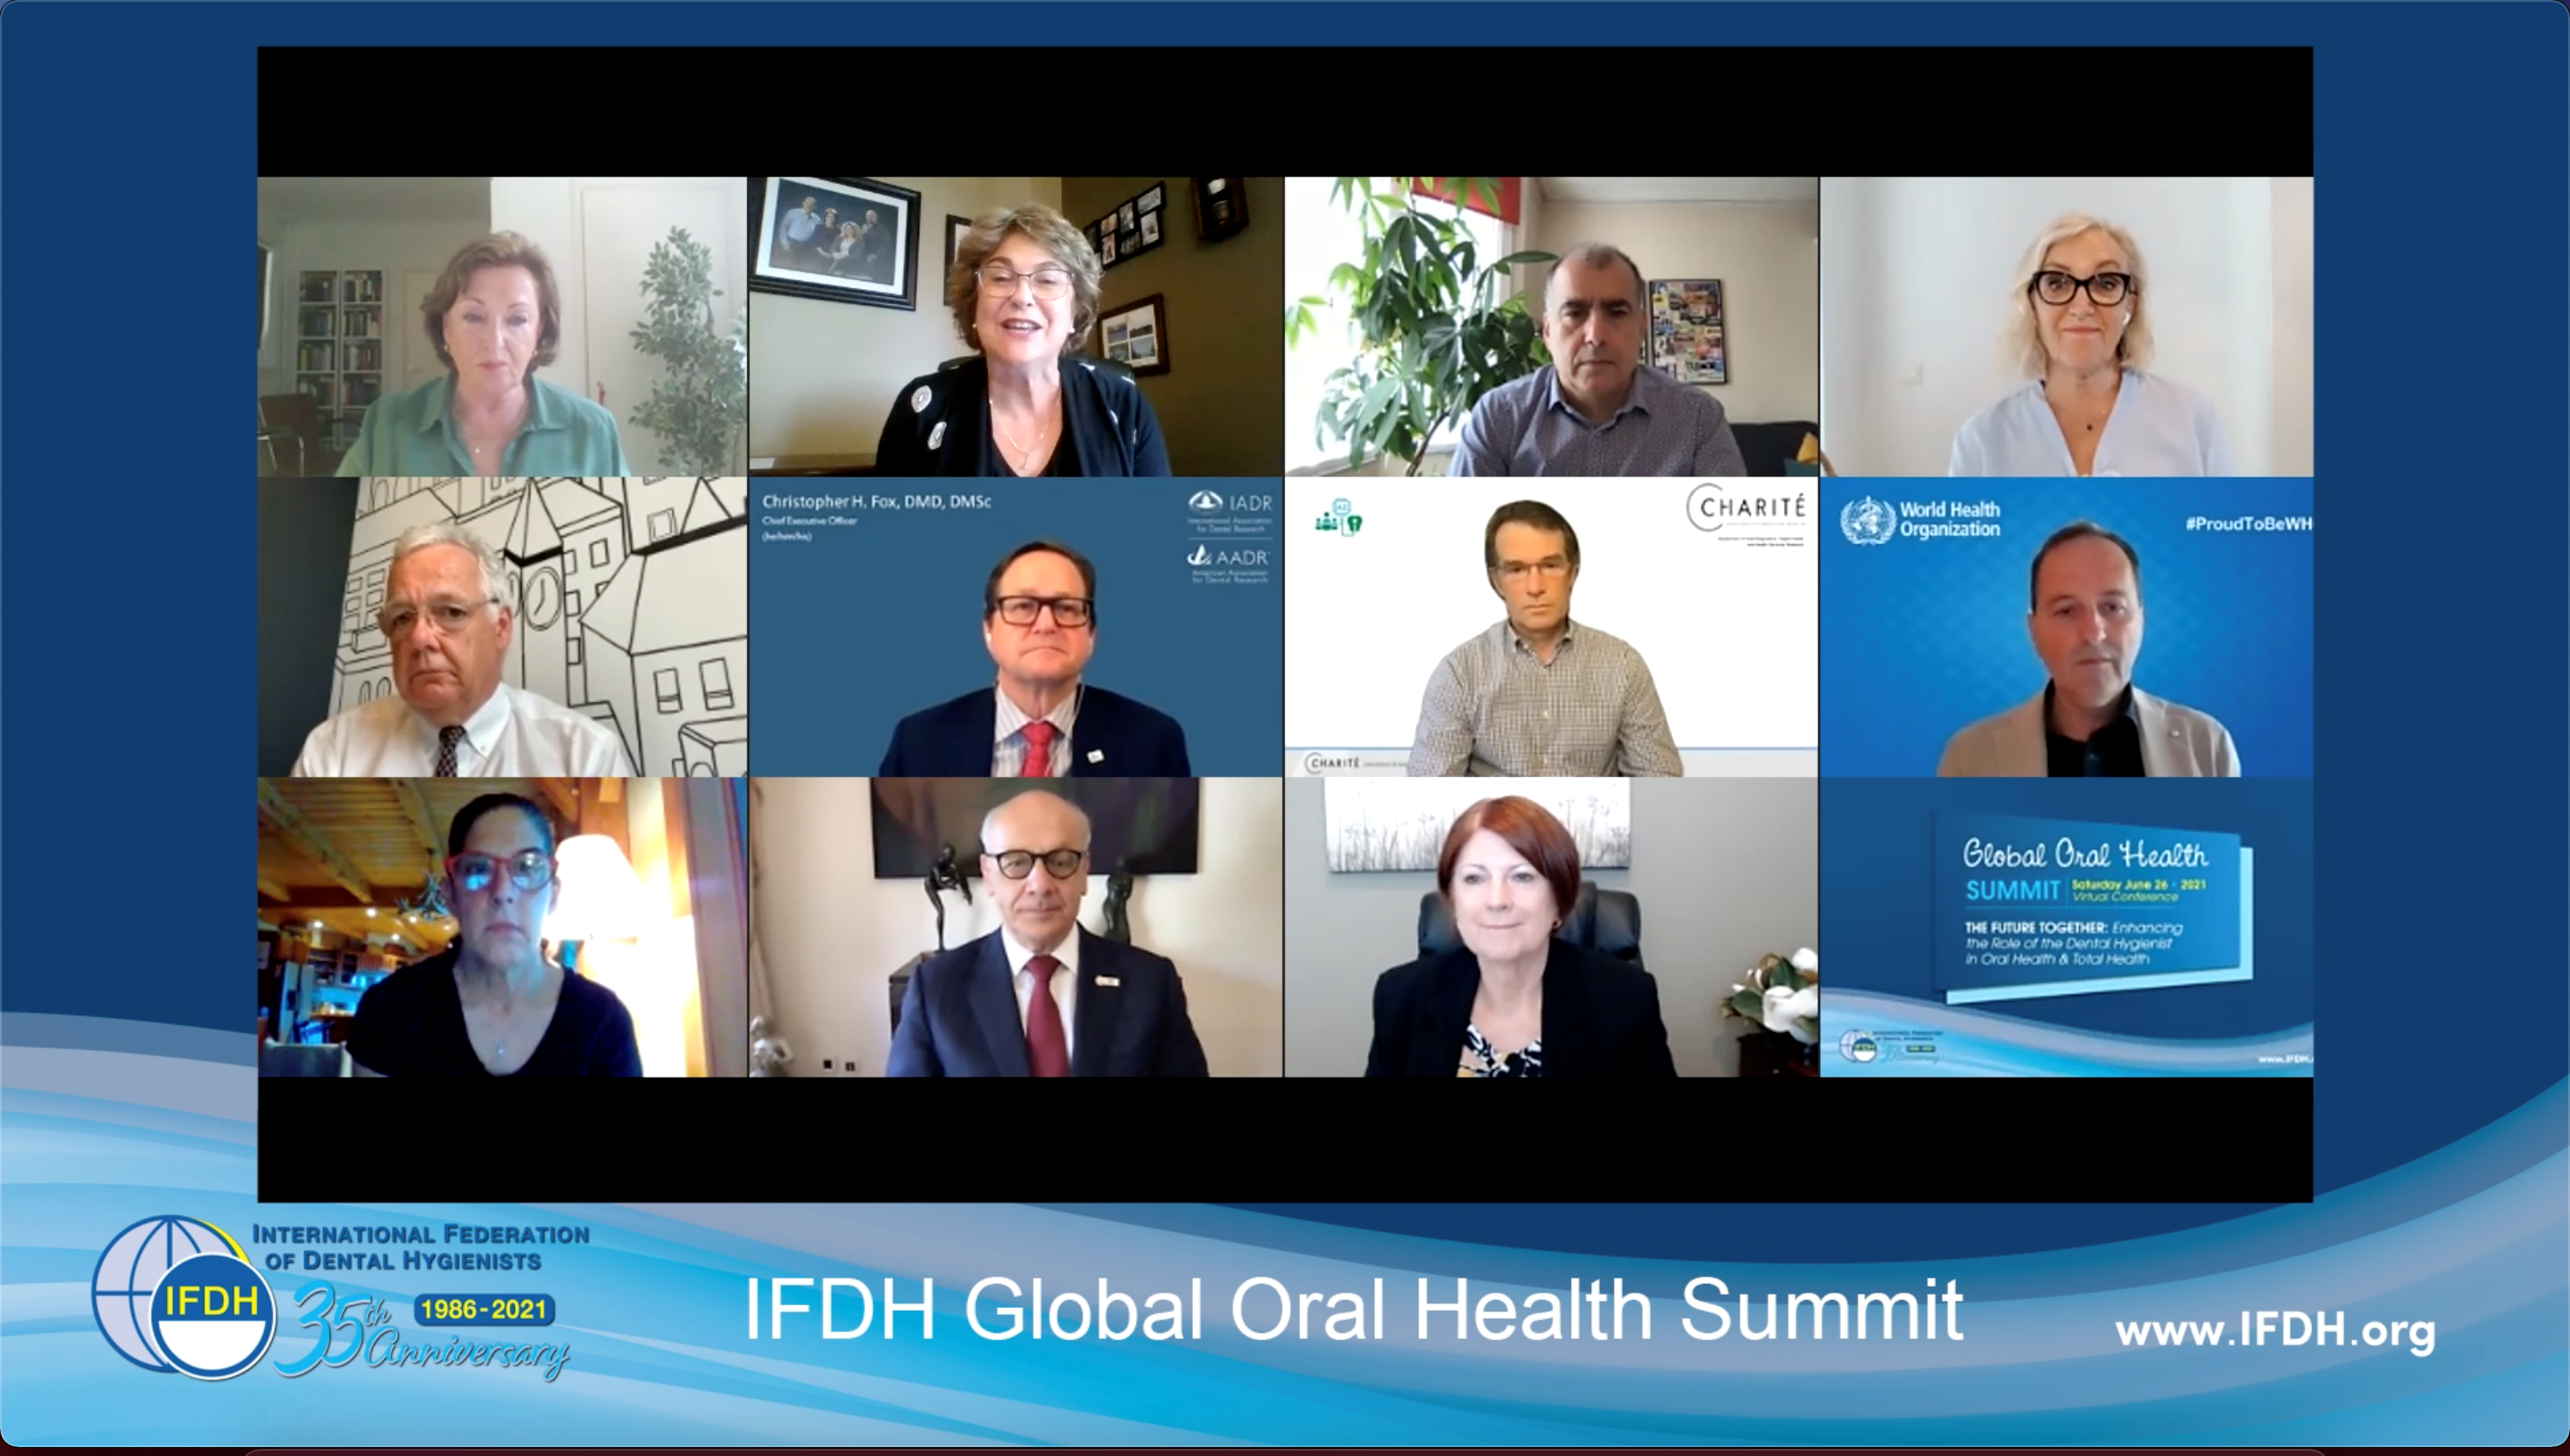 Global Oral Health Summit, Virtual Conference, June 26, 2021